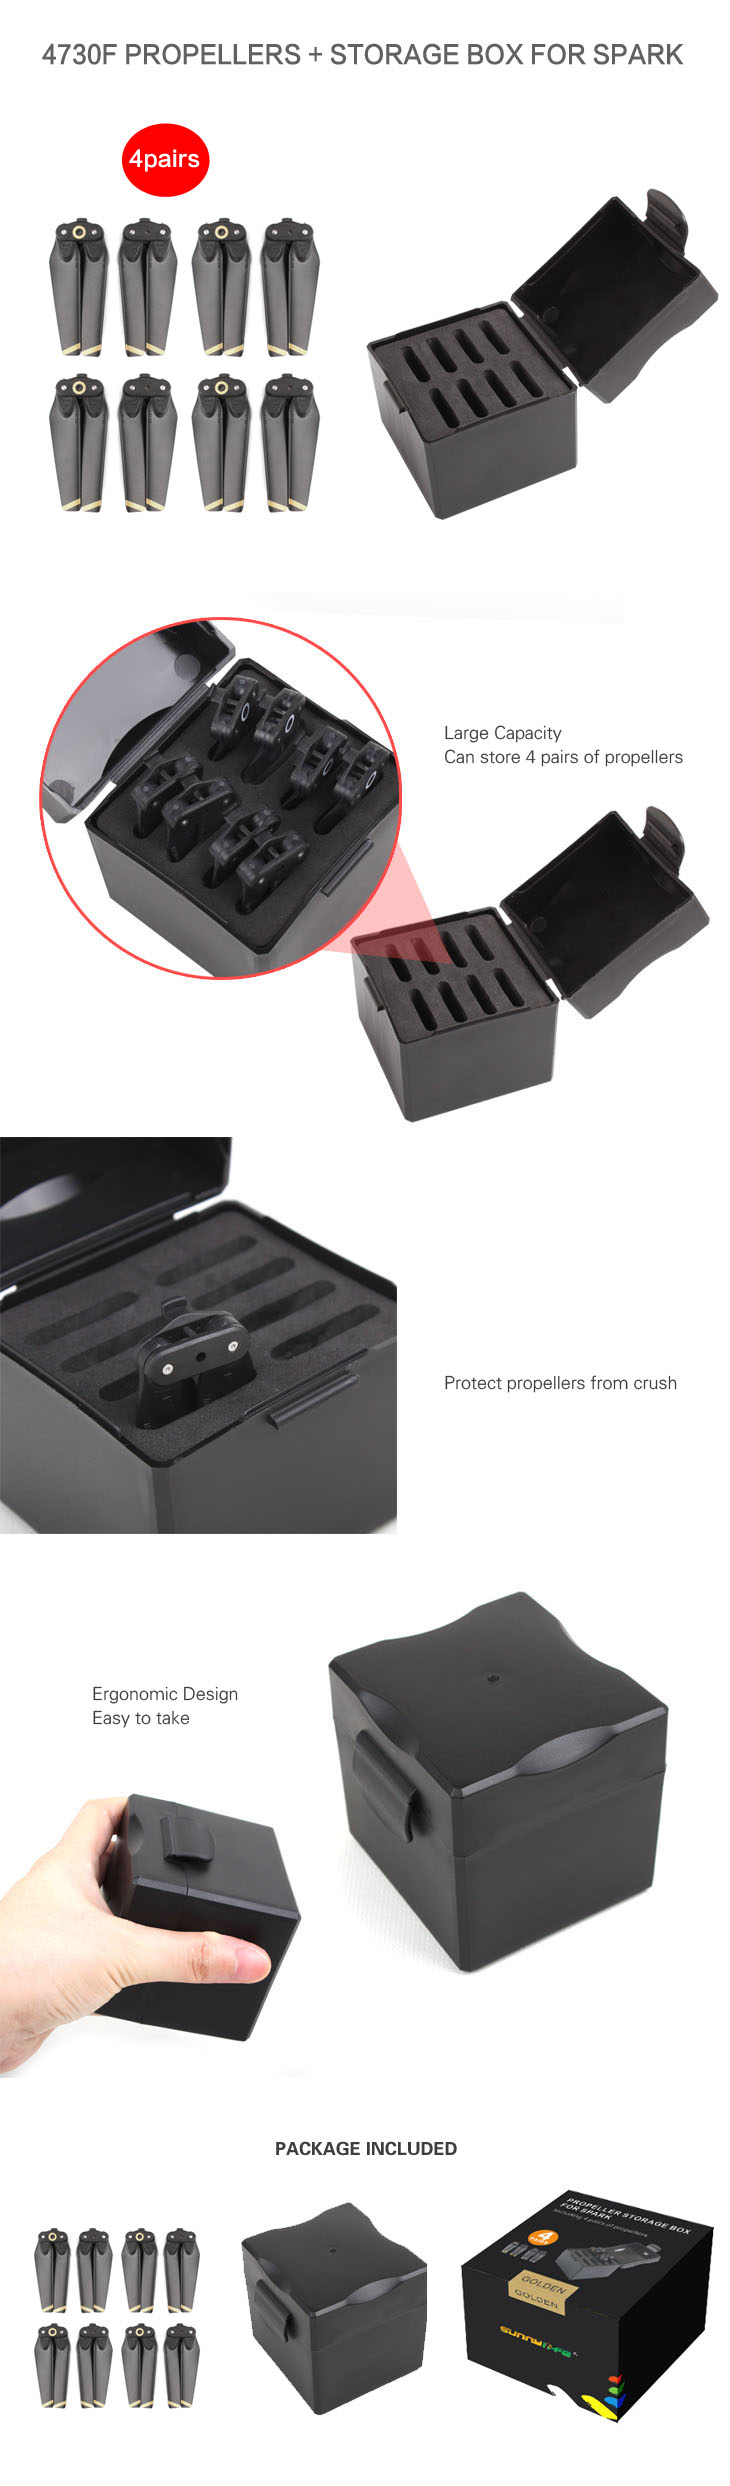 4 Pairs SPARK 4730F Propellers Quick-release Foldable Props Including Propeller Storage Box for SPARK Drone